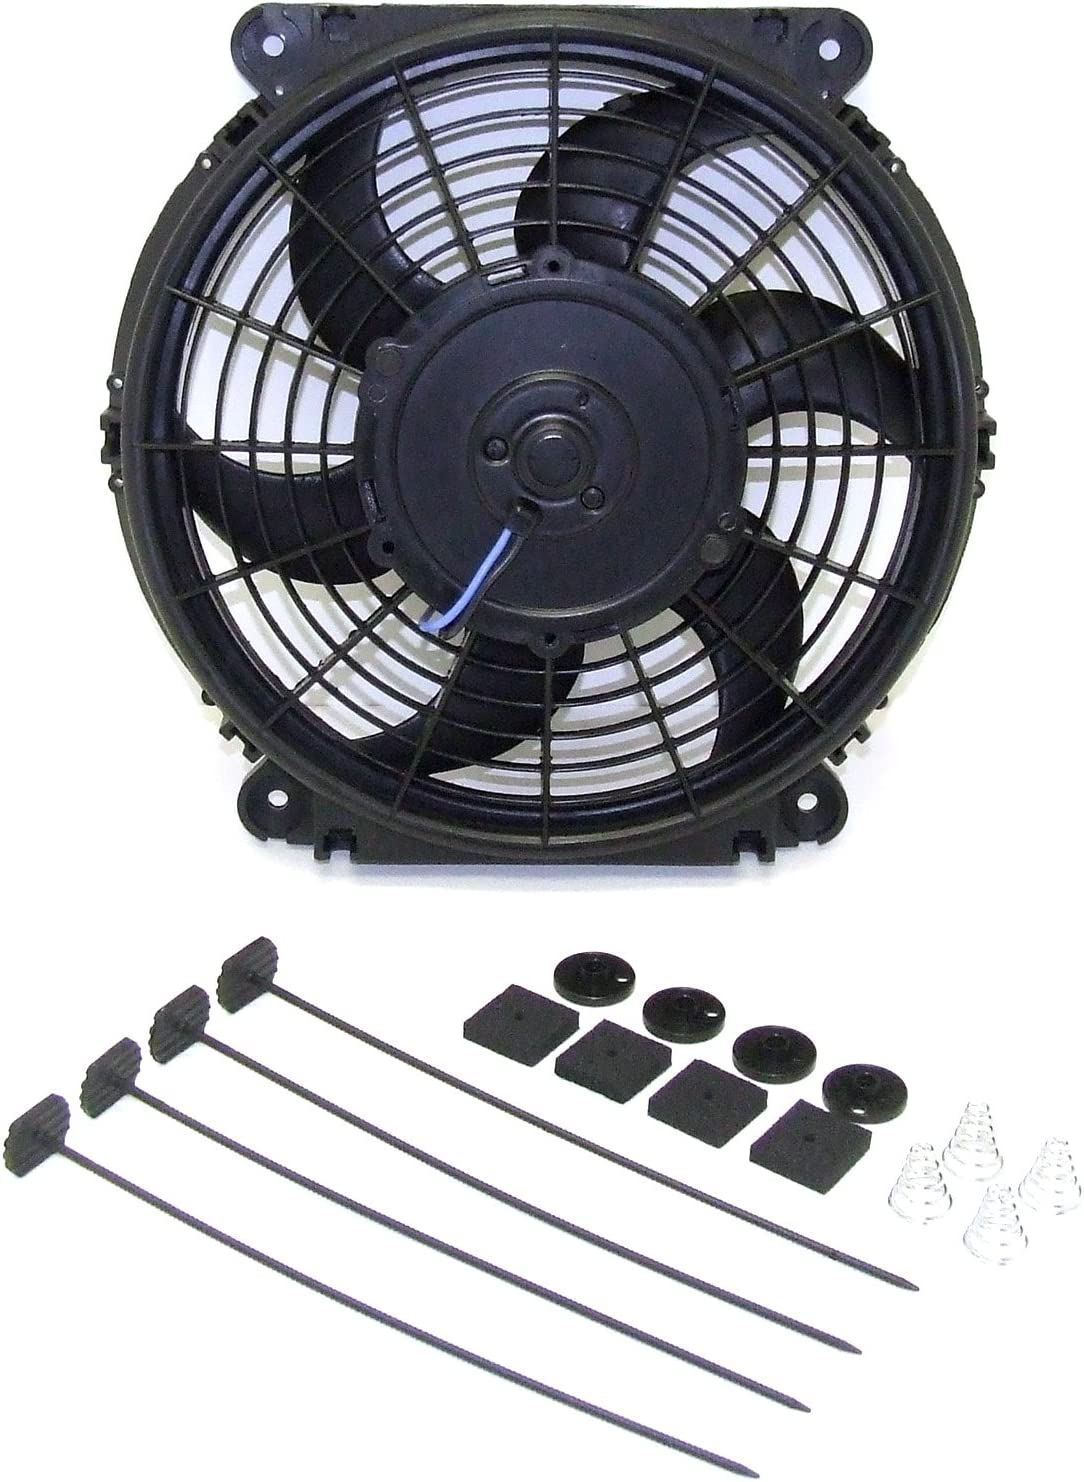 Hayden 3670 - Rapid-Cool Universal Fit Reversible Fan Kit